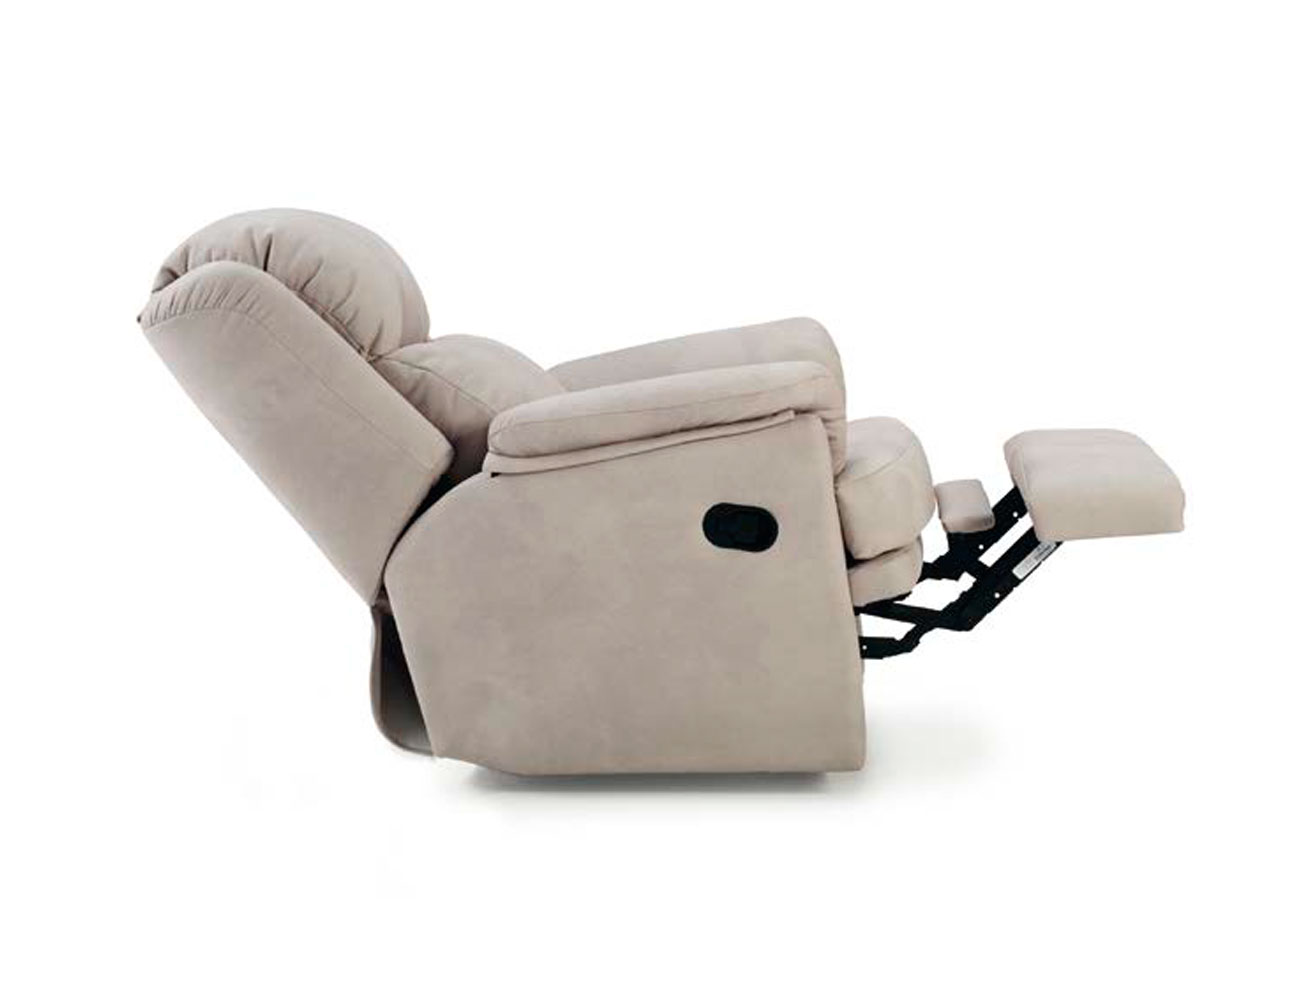 Sillon relax manual palanca esther 19